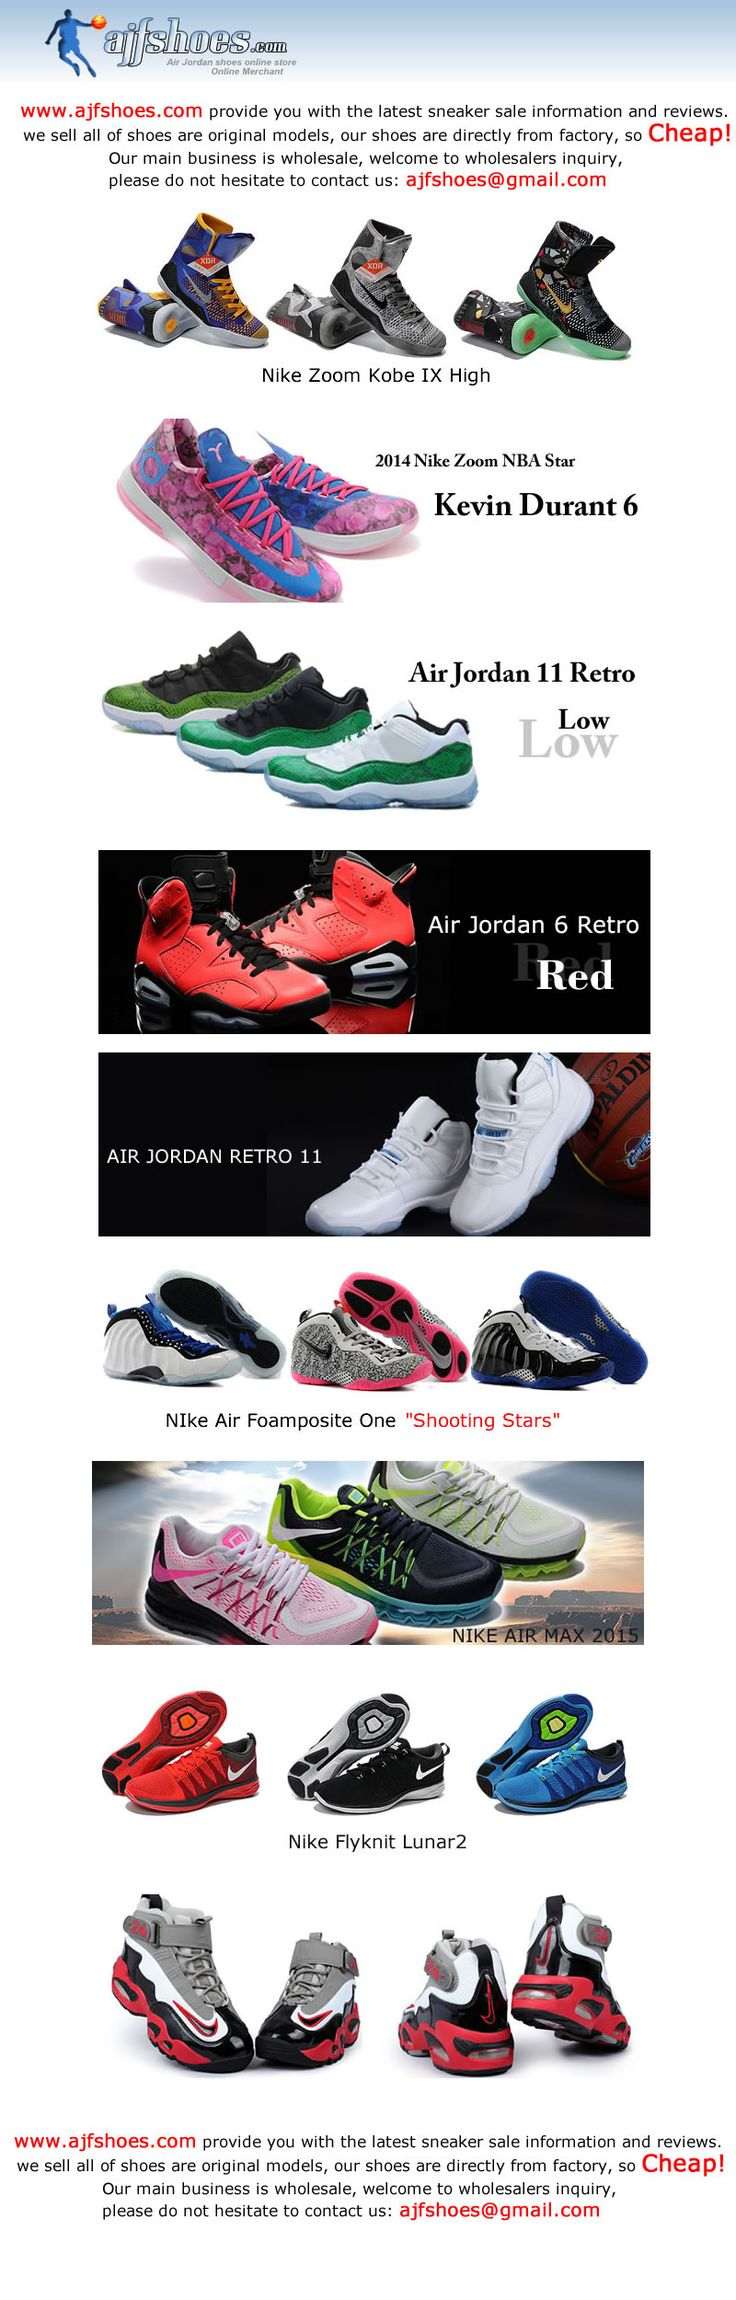 ajfshoes.com provide you with the latest jordan shoes sale information and reviews